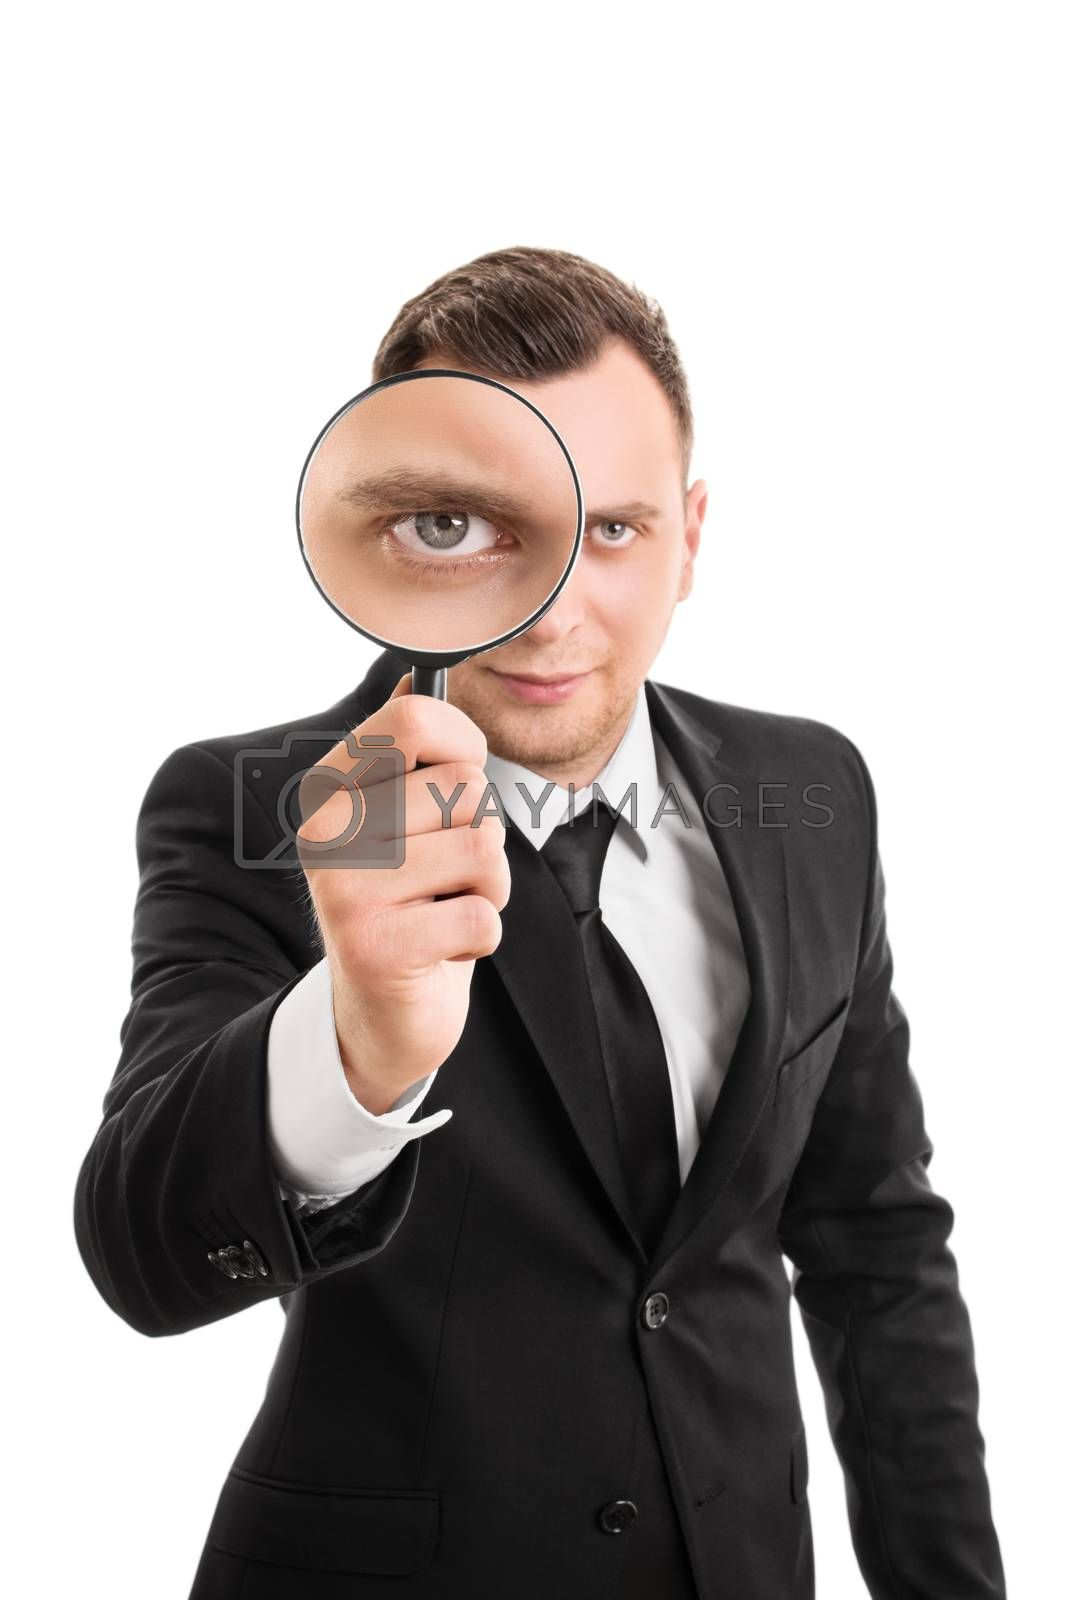 A portrait of a young businessman looking through a magnifying glass, isolated on white background.